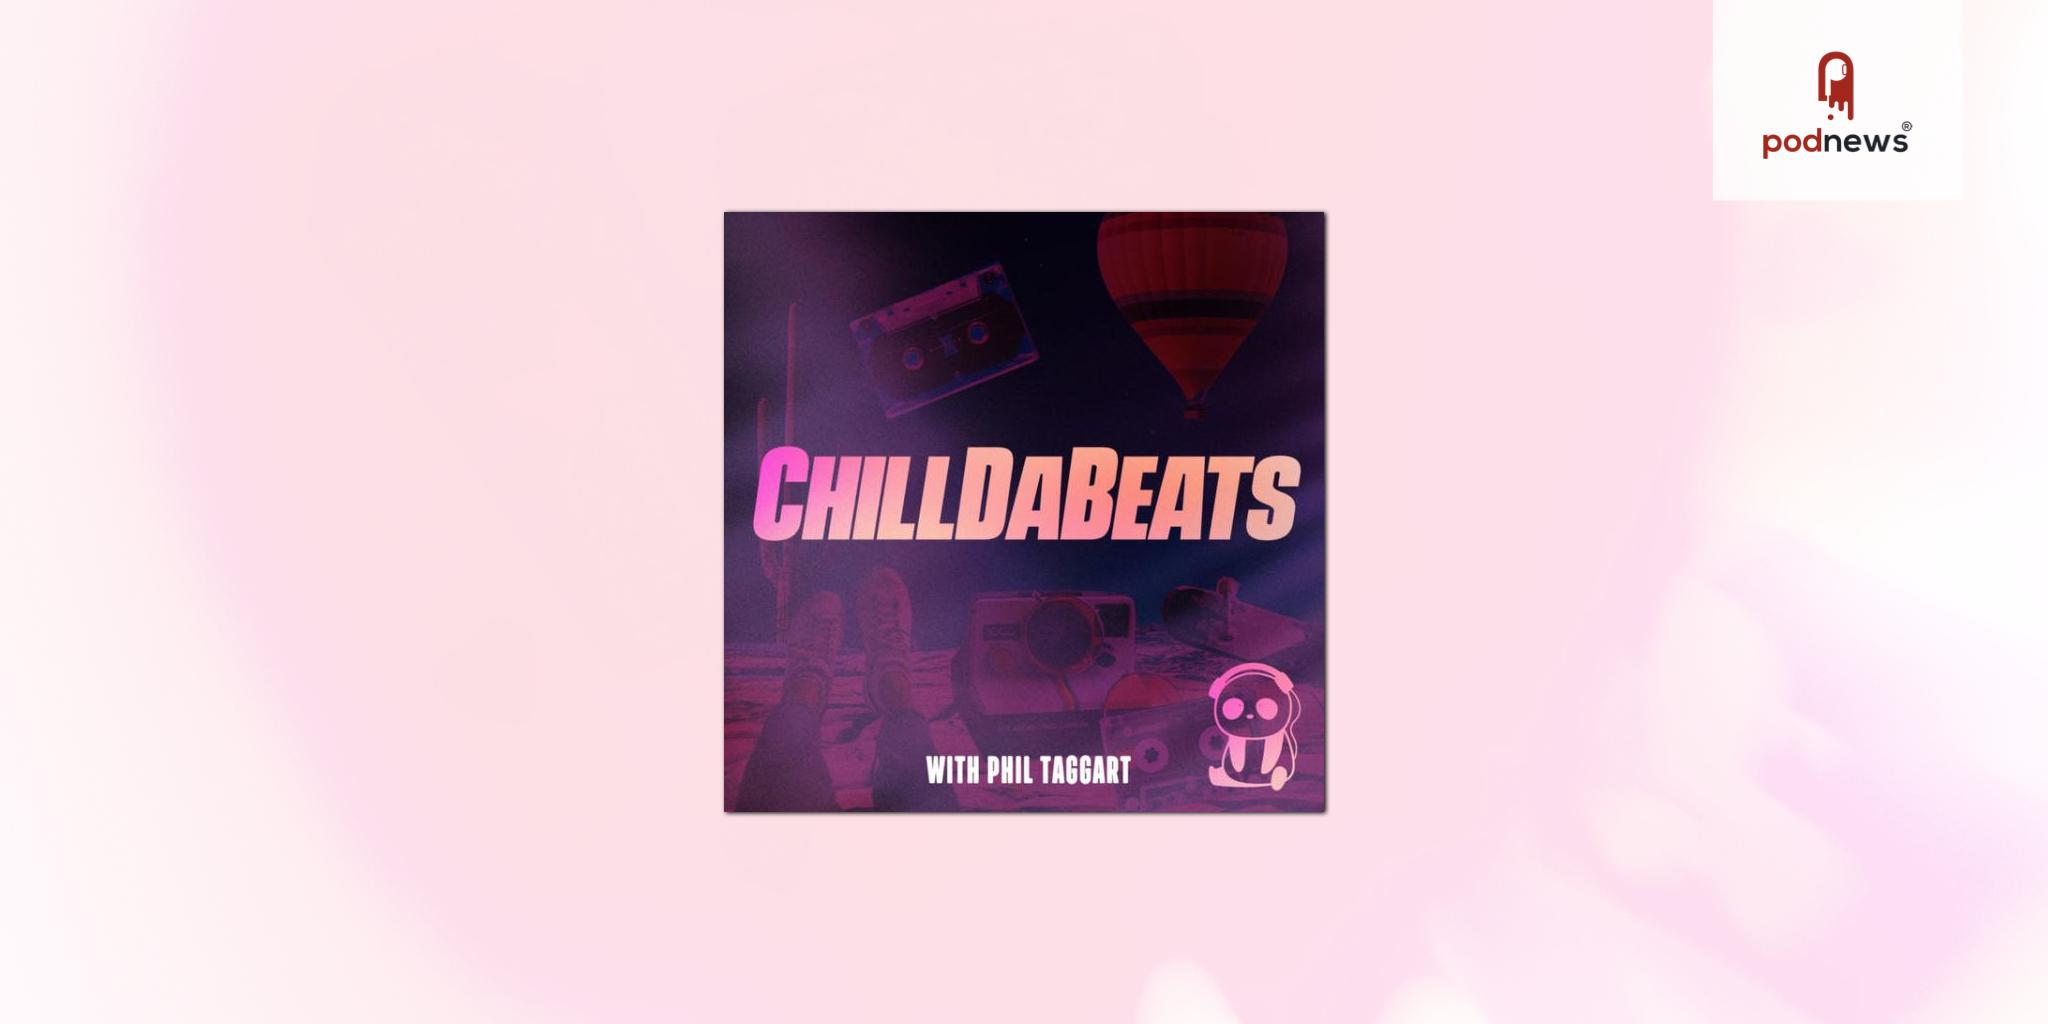 Former Radio 1 DJ Phil Taggart launches ChillDaBeats